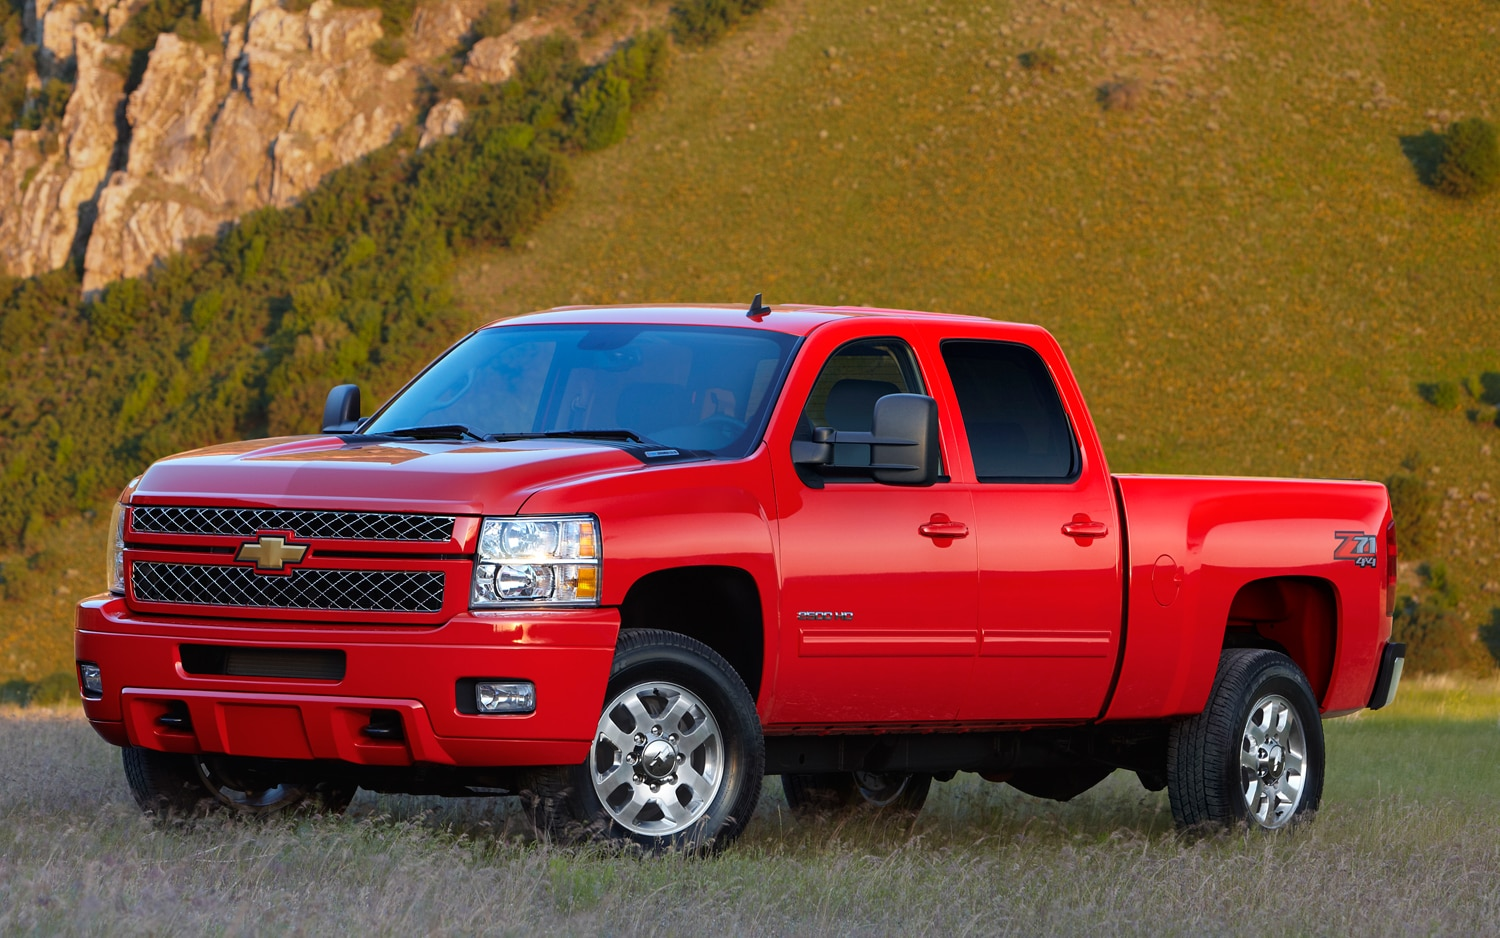 Pickup 2012 chevy pickup : 2012 Chevrolet Silverado Gets with New Appearance Packages, Wi-Fi